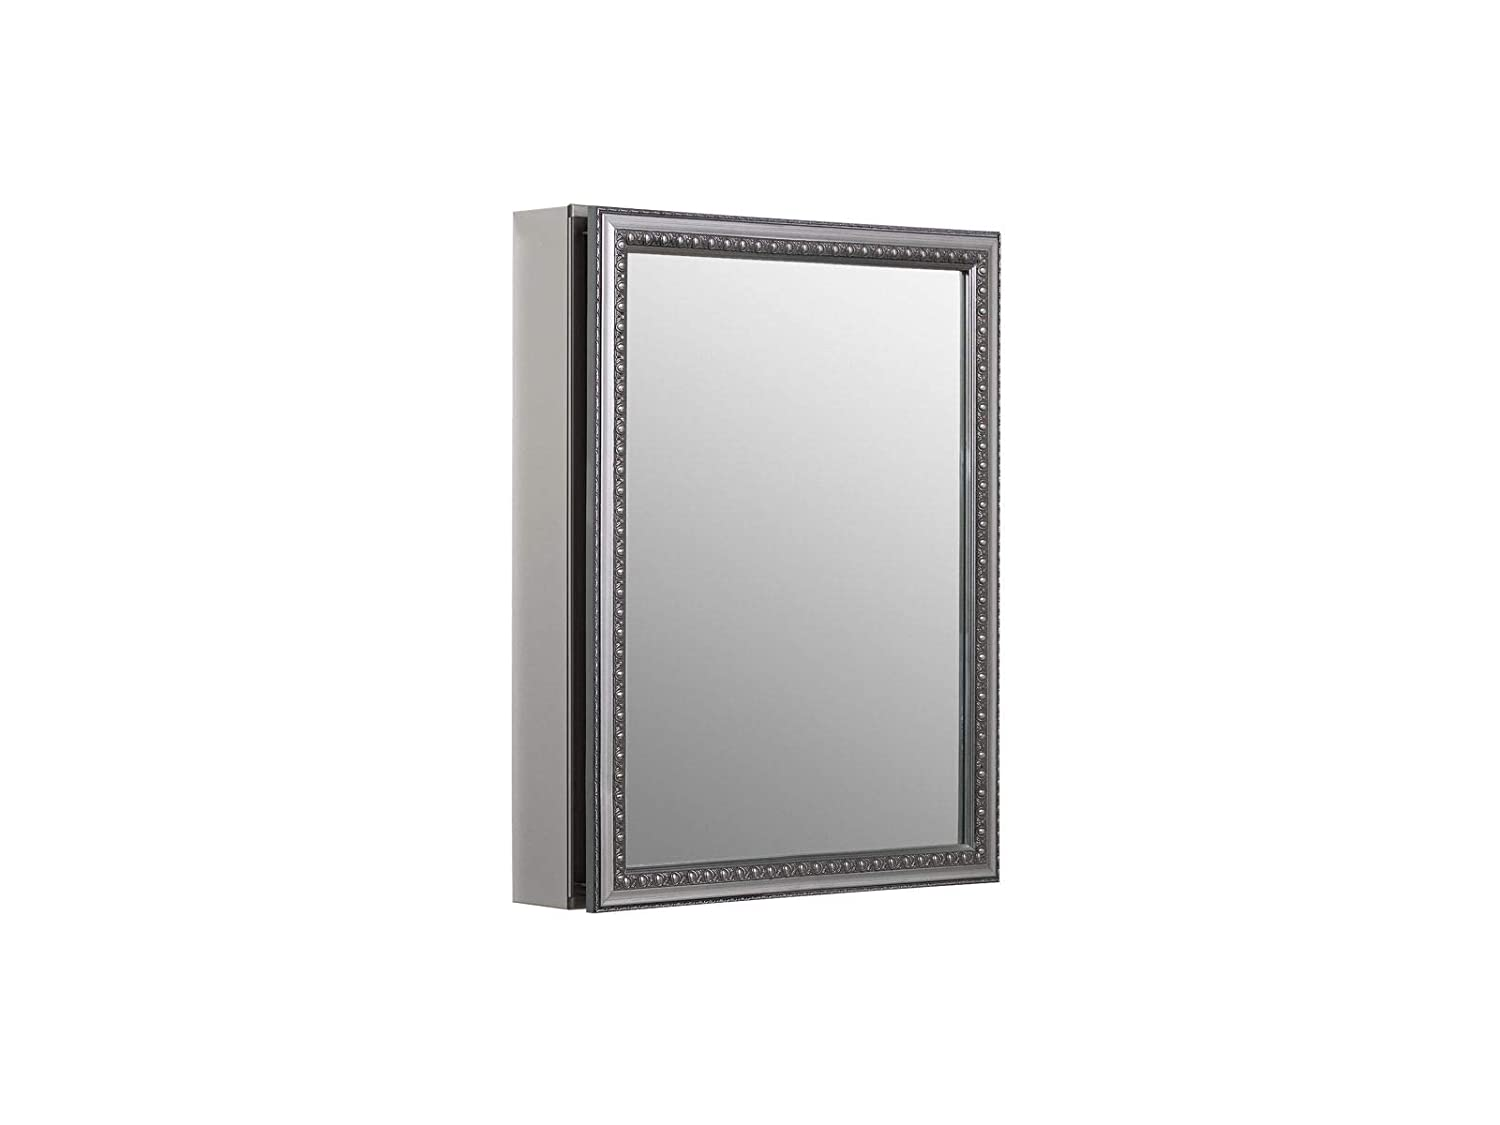 KOHLER K-CB-CLW2026SS 20 inch x 26 inch Aluminum Bathroom Medicine Cabinet with Decorative Silver Framed Mirror Door Recess or Surface Mount